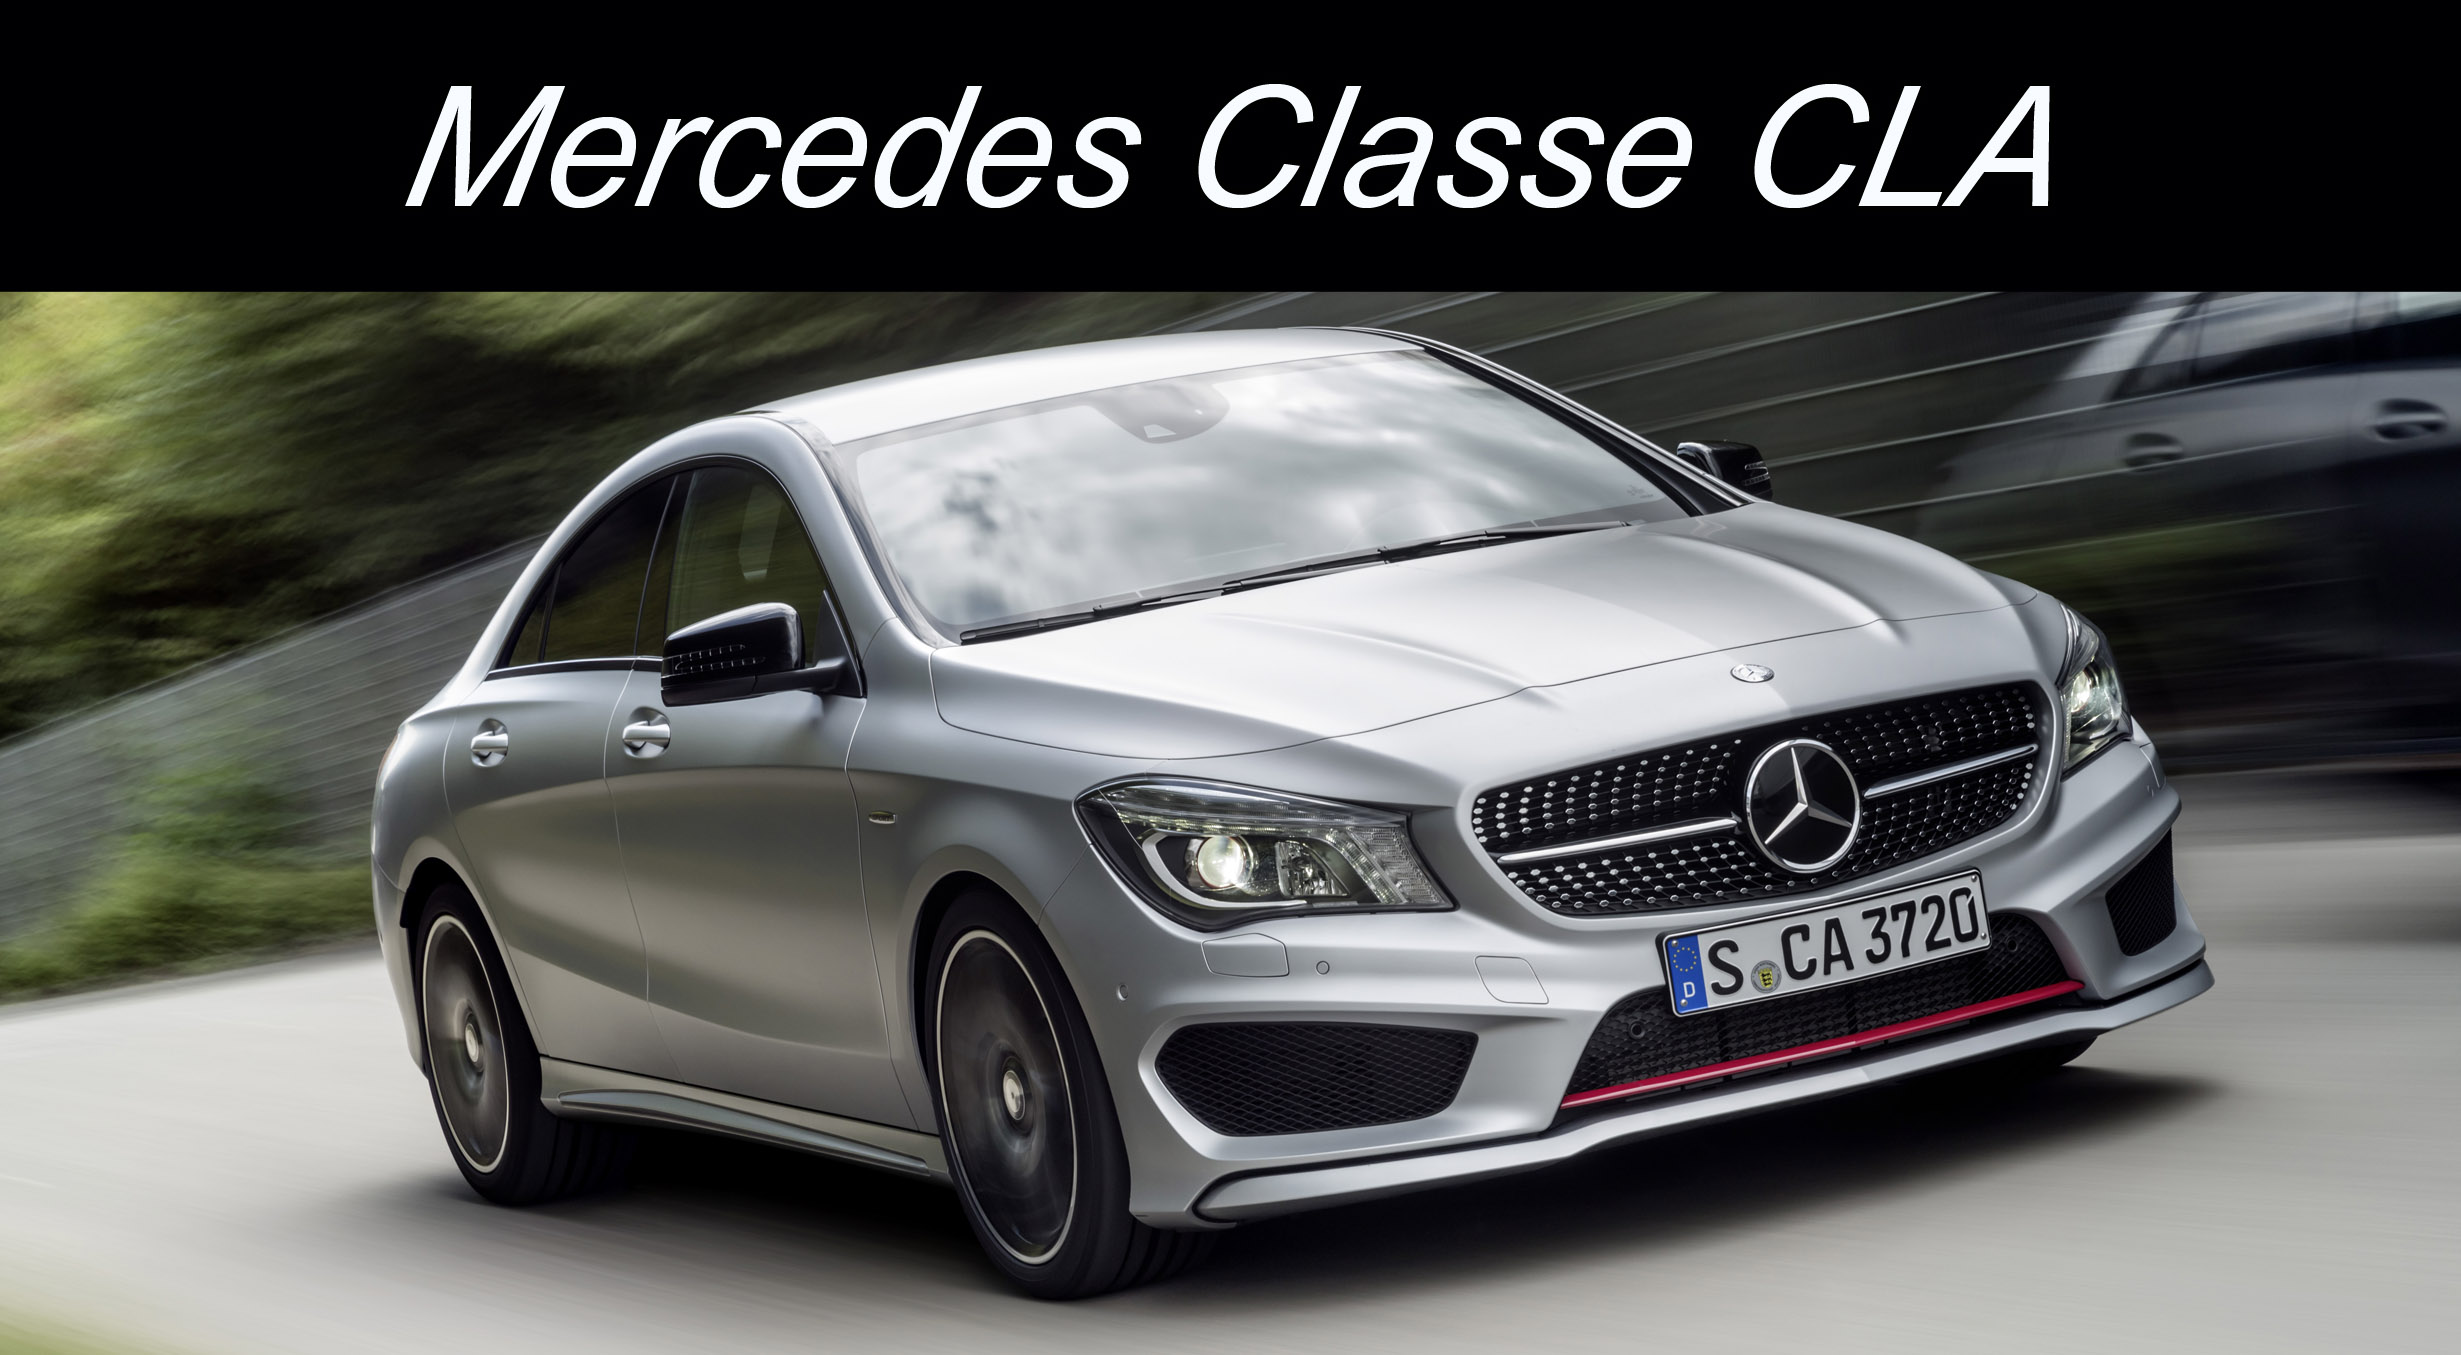 les autres stars de mercedes 1 cla classe e cls classe s. Black Bedroom Furniture Sets. Home Design Ideas